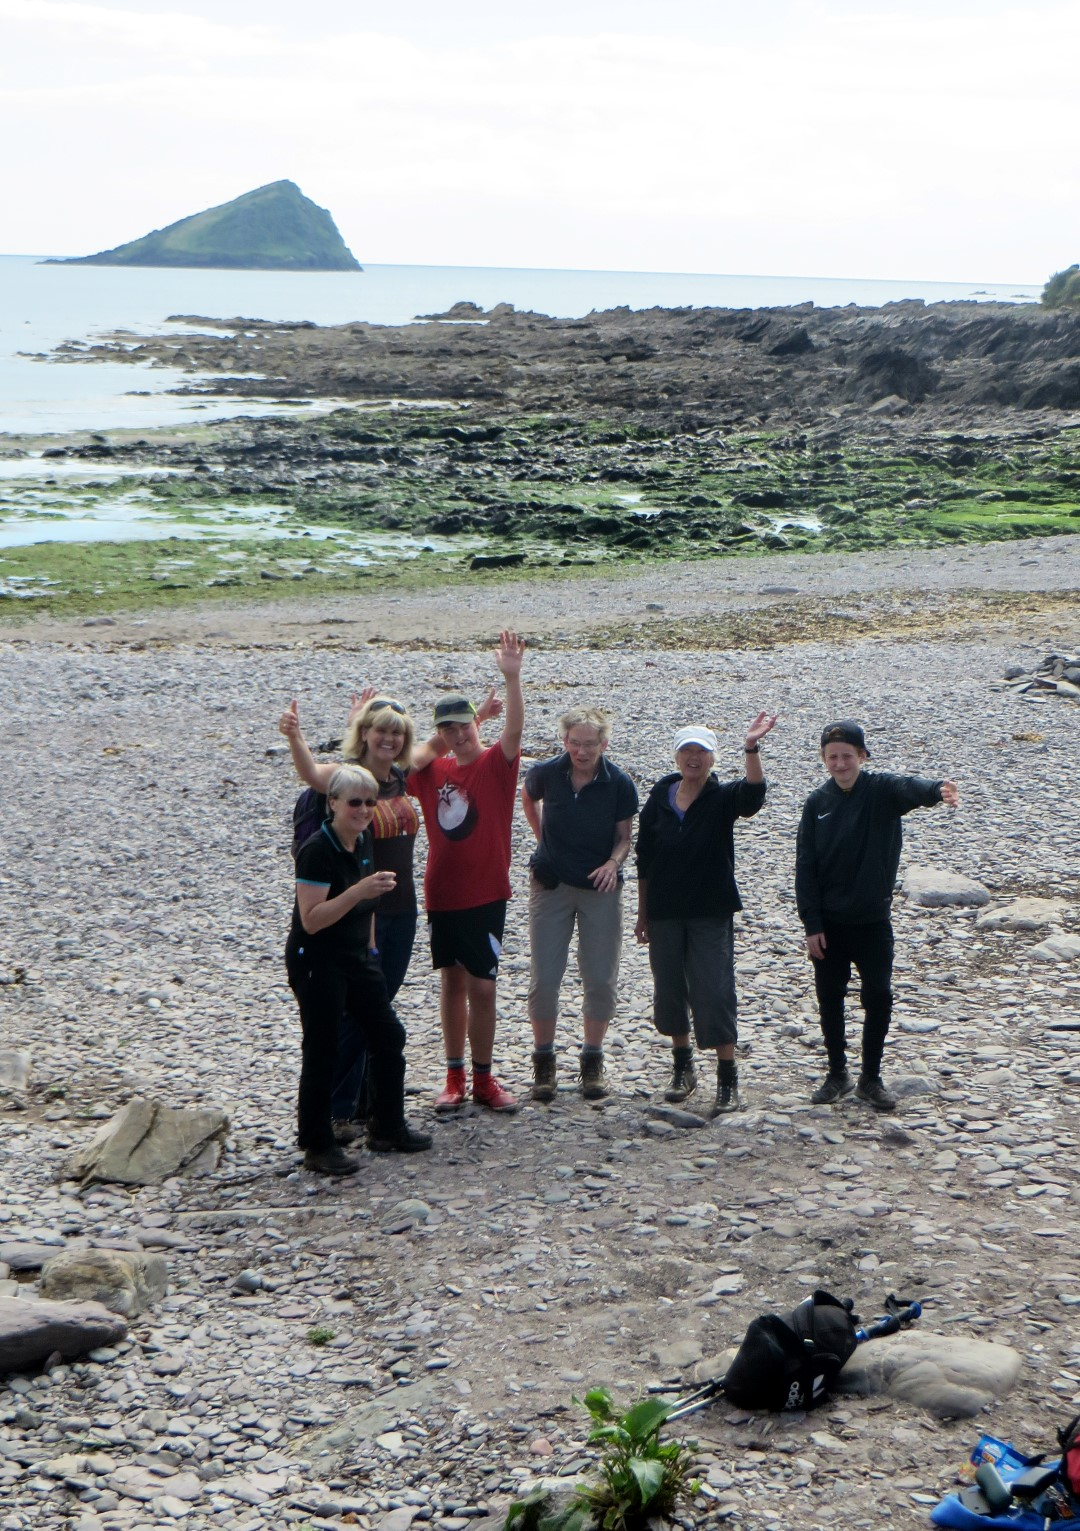 We finally made it to the sea at Wembury